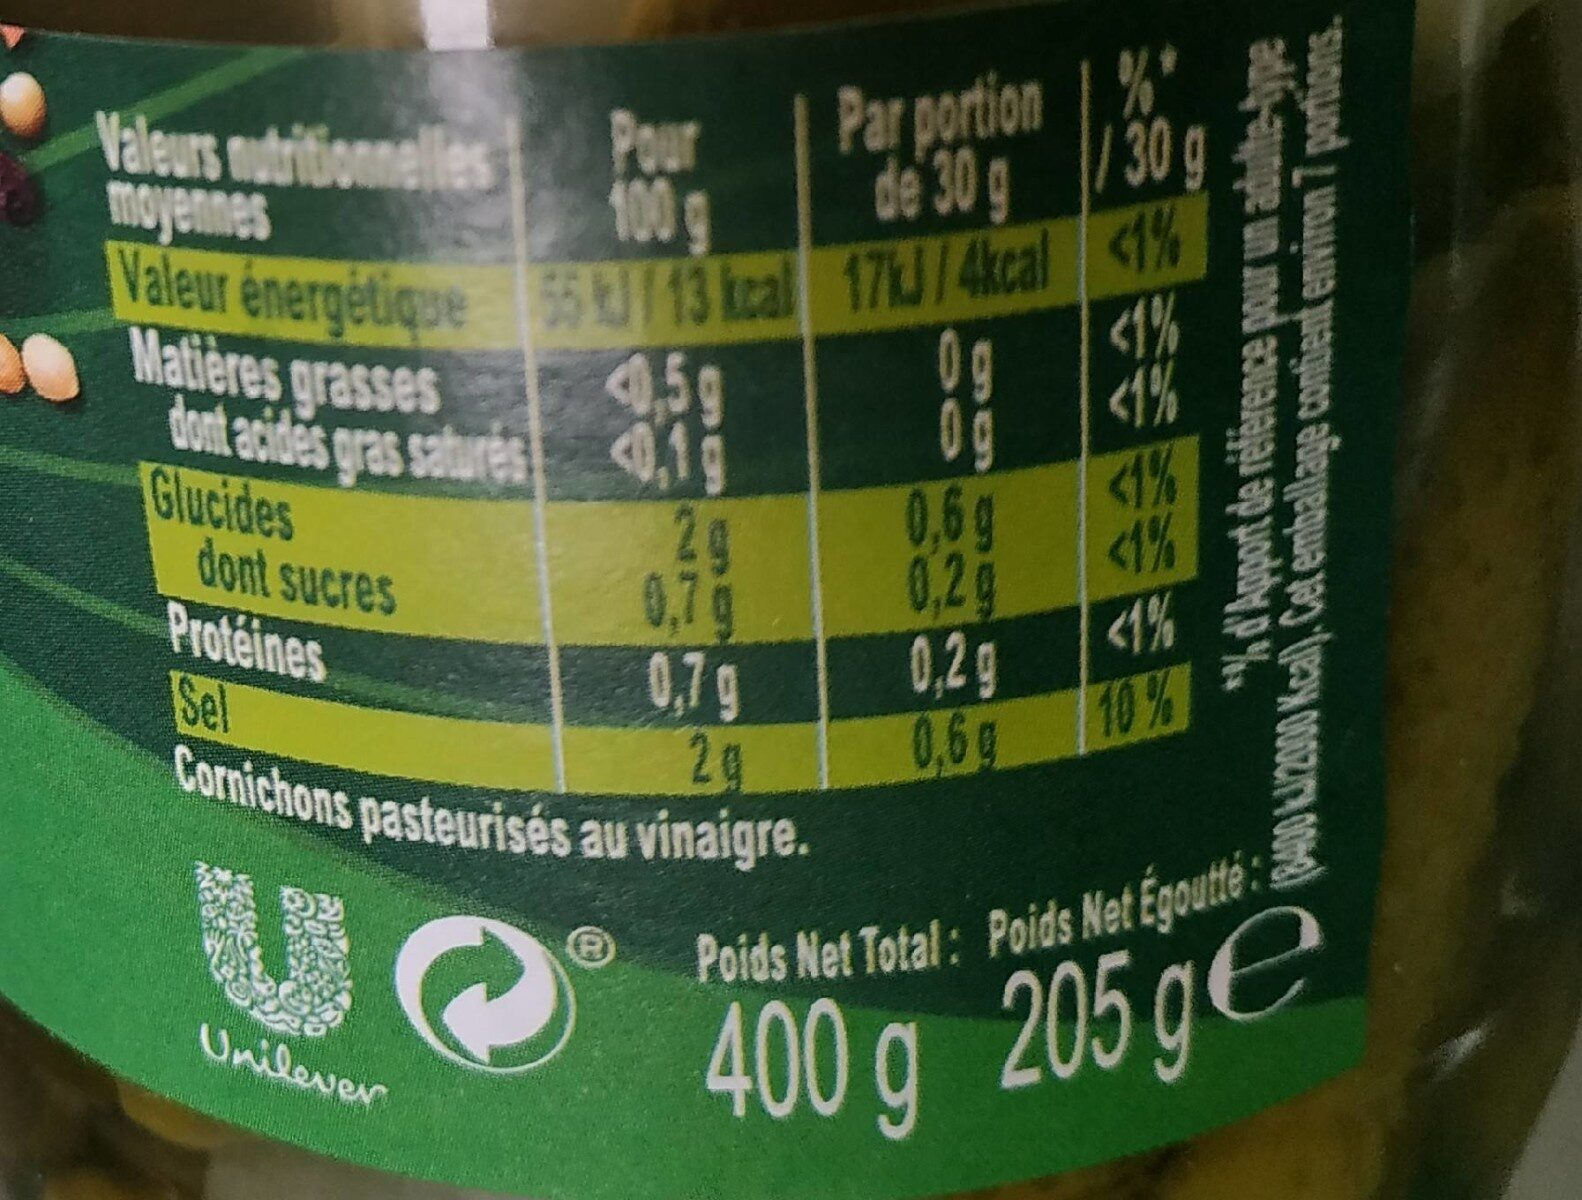 Amora Cornichons Extra Fin Bocal - Nutrition facts - fr